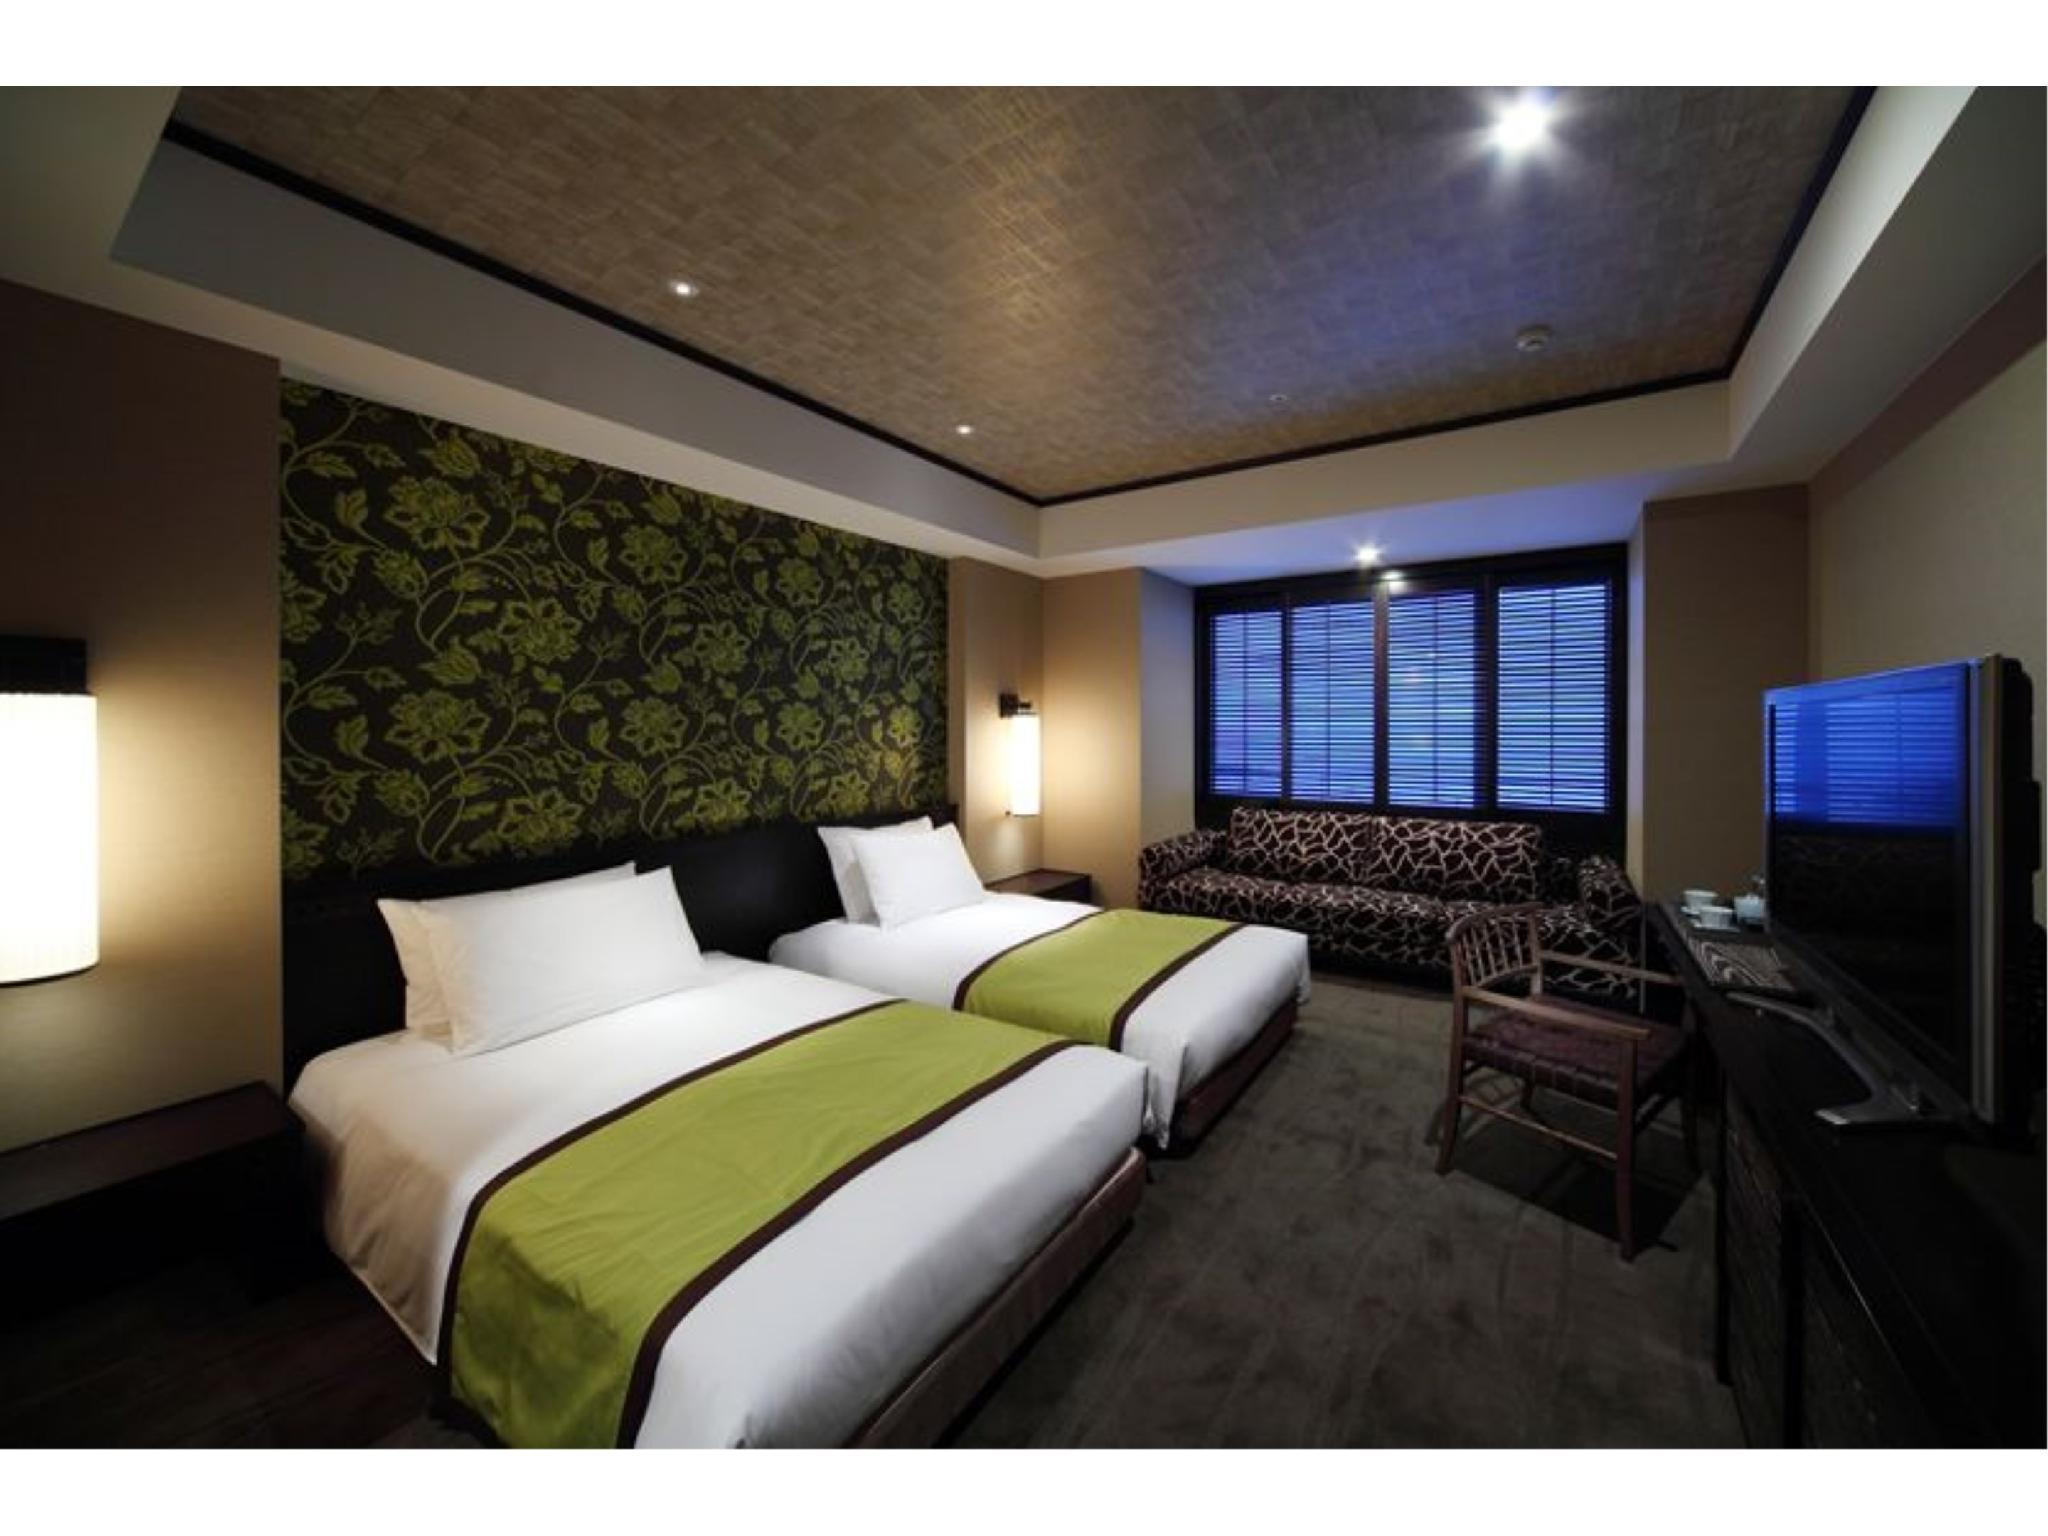 普通樓層 精緻雙人雙床房 (Superior Twin Room (Harbor View, Regular Floor))